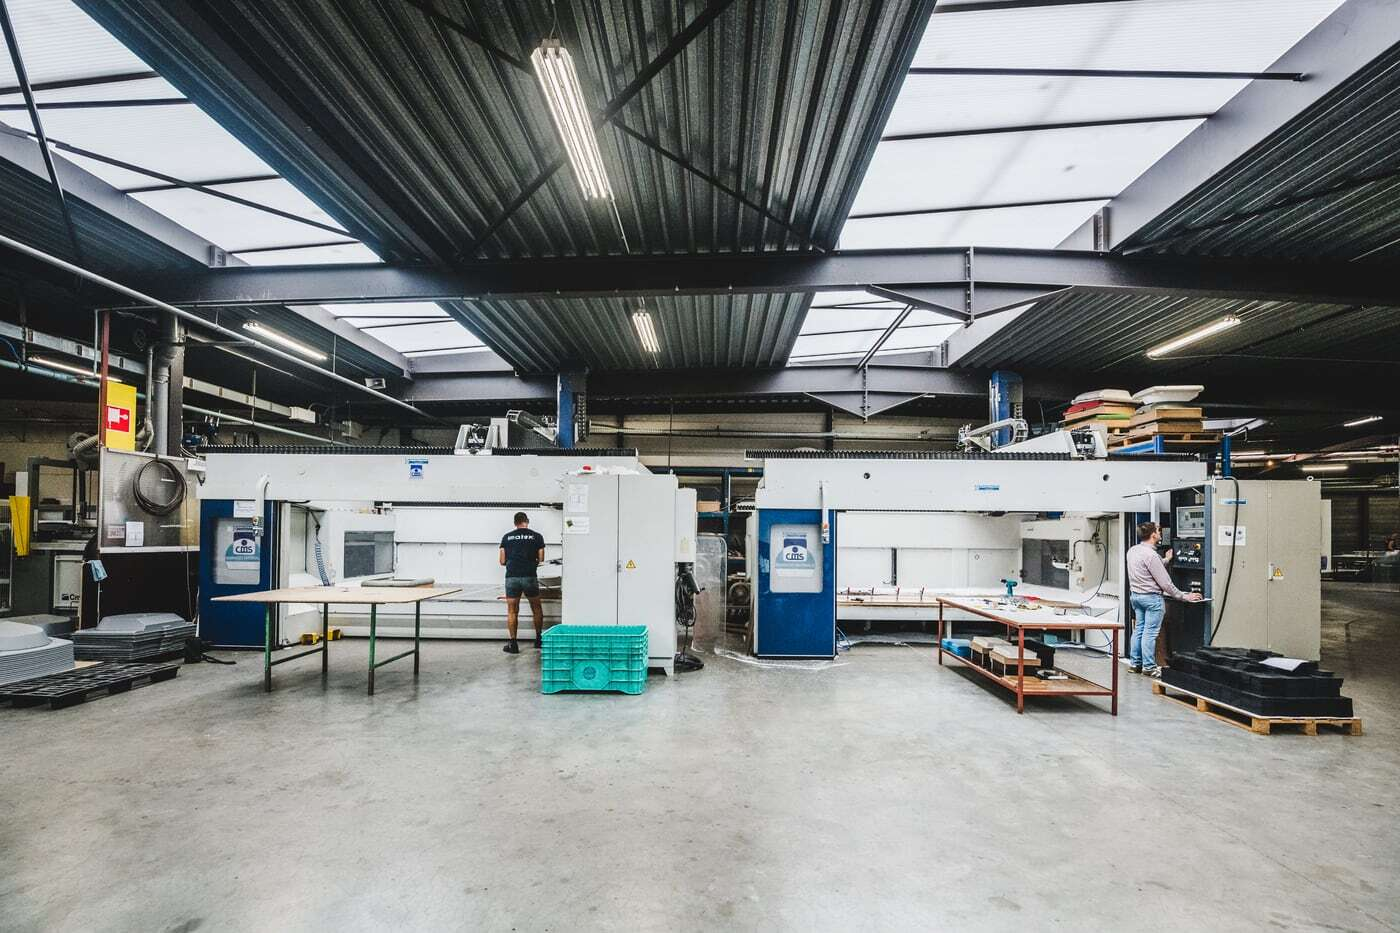 Imatex beschikt over drie 5-assige freesmachines.